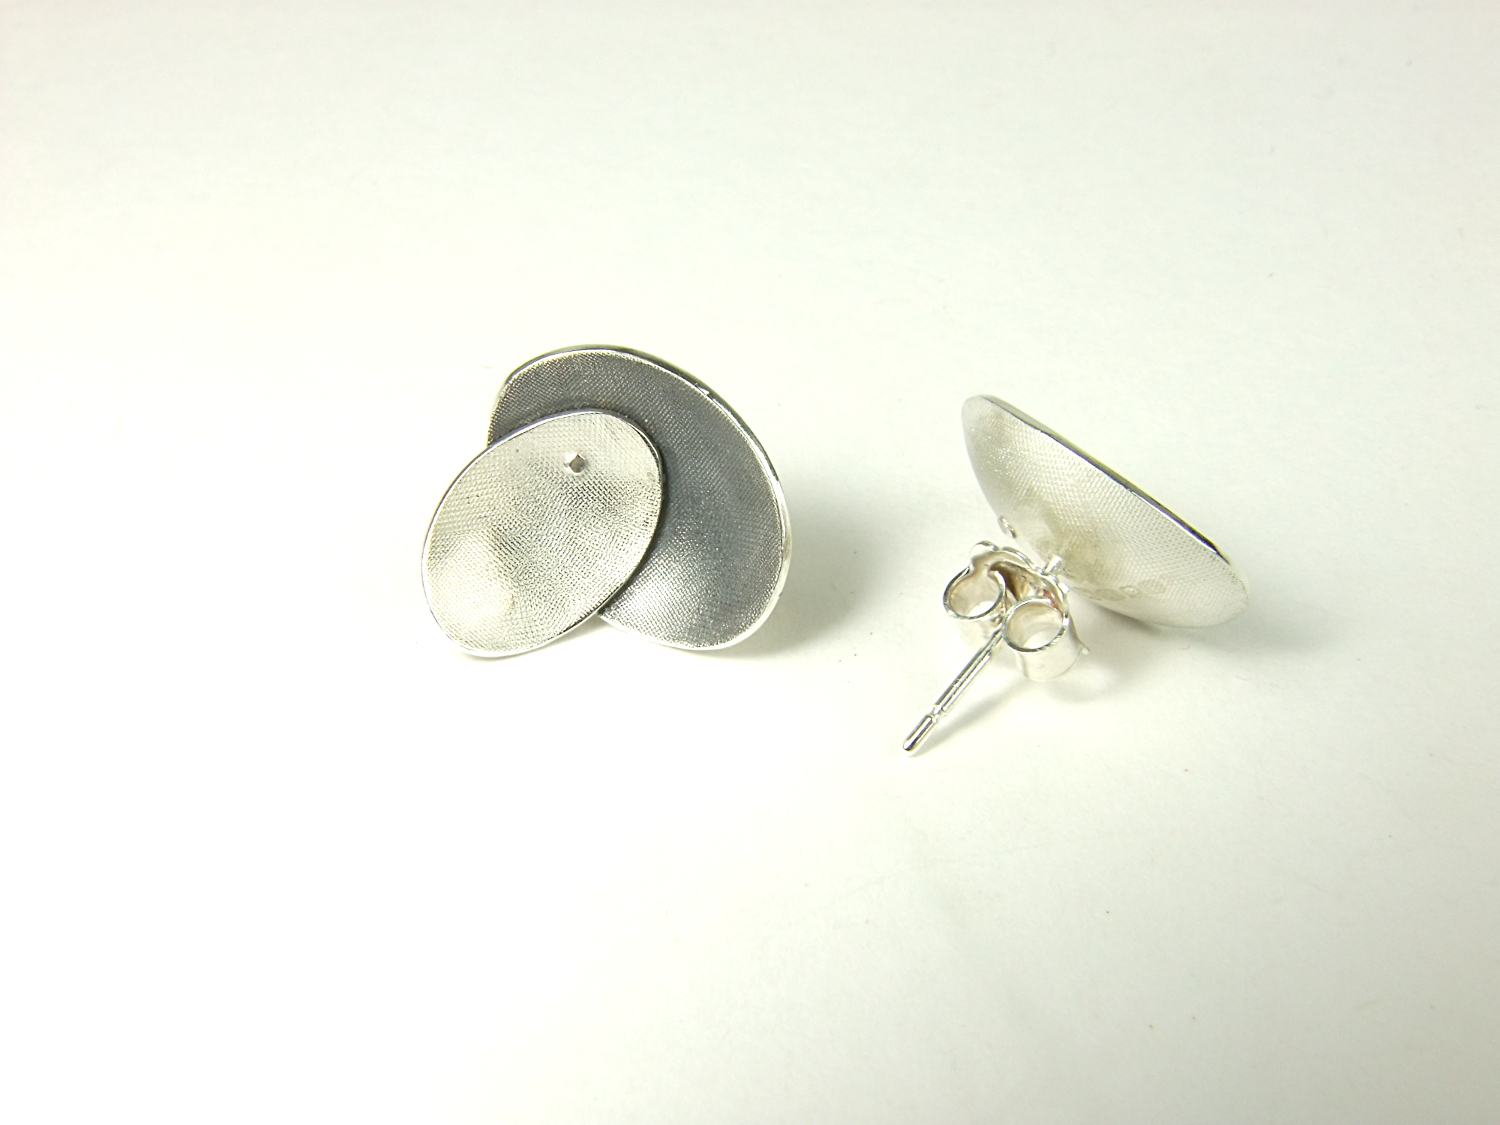 Rear view of large Argentium silver ear studs with two domed oval shapes, partially oxidised. (HBM088B)